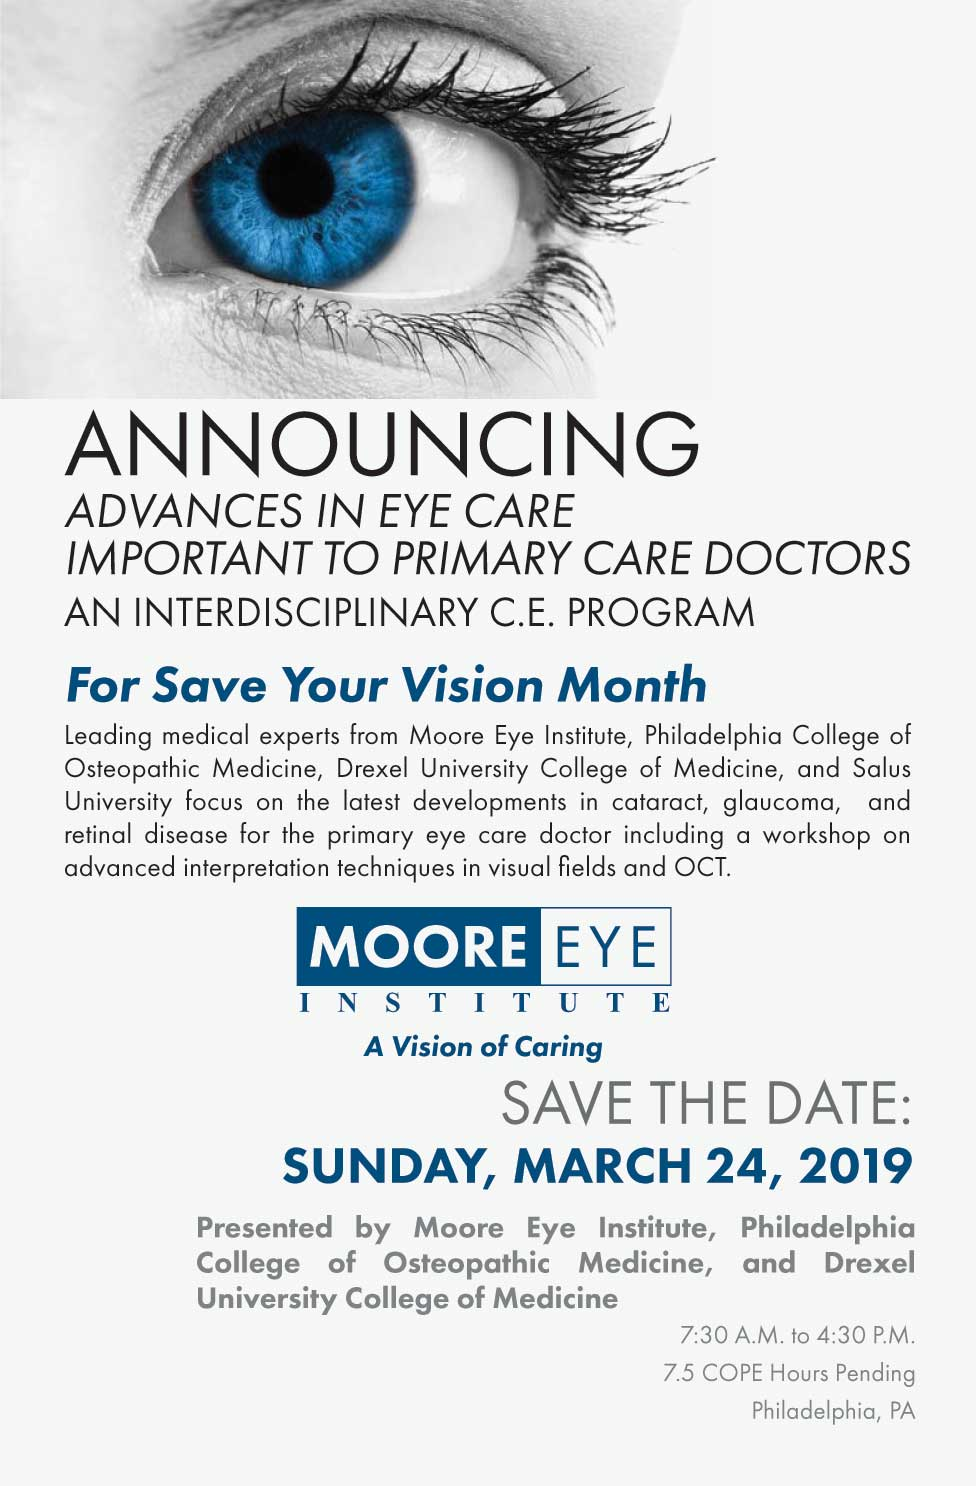 Save the Date for Advances in Eye Care Important to Primary Care Doctors